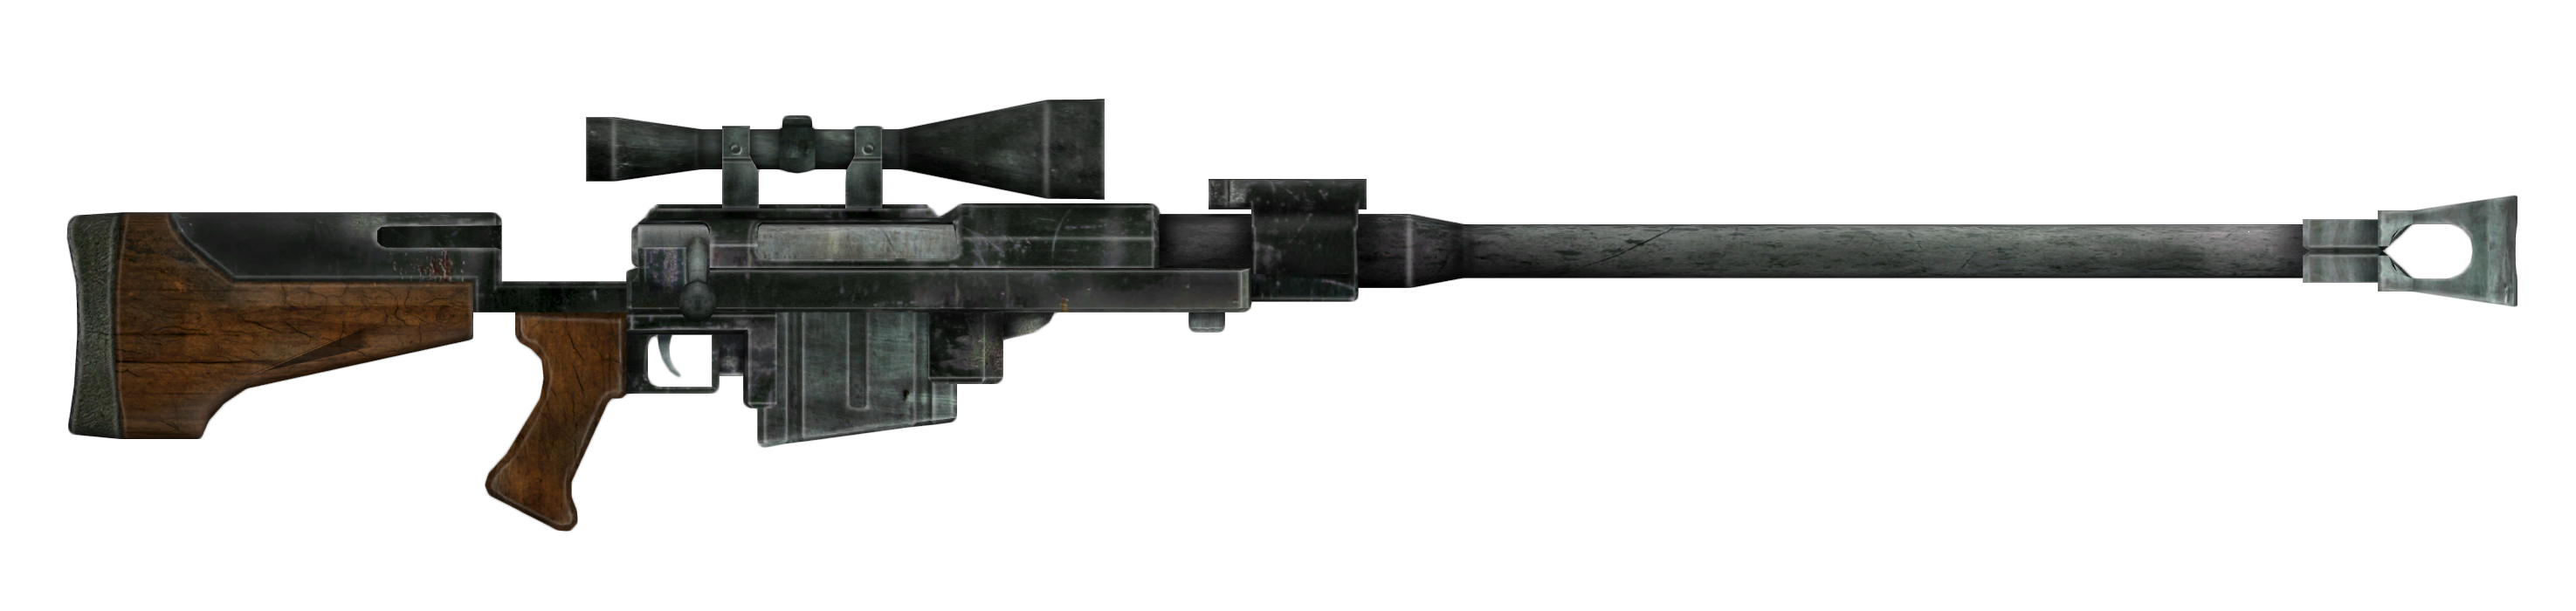 Anti-materiel_rifle.png